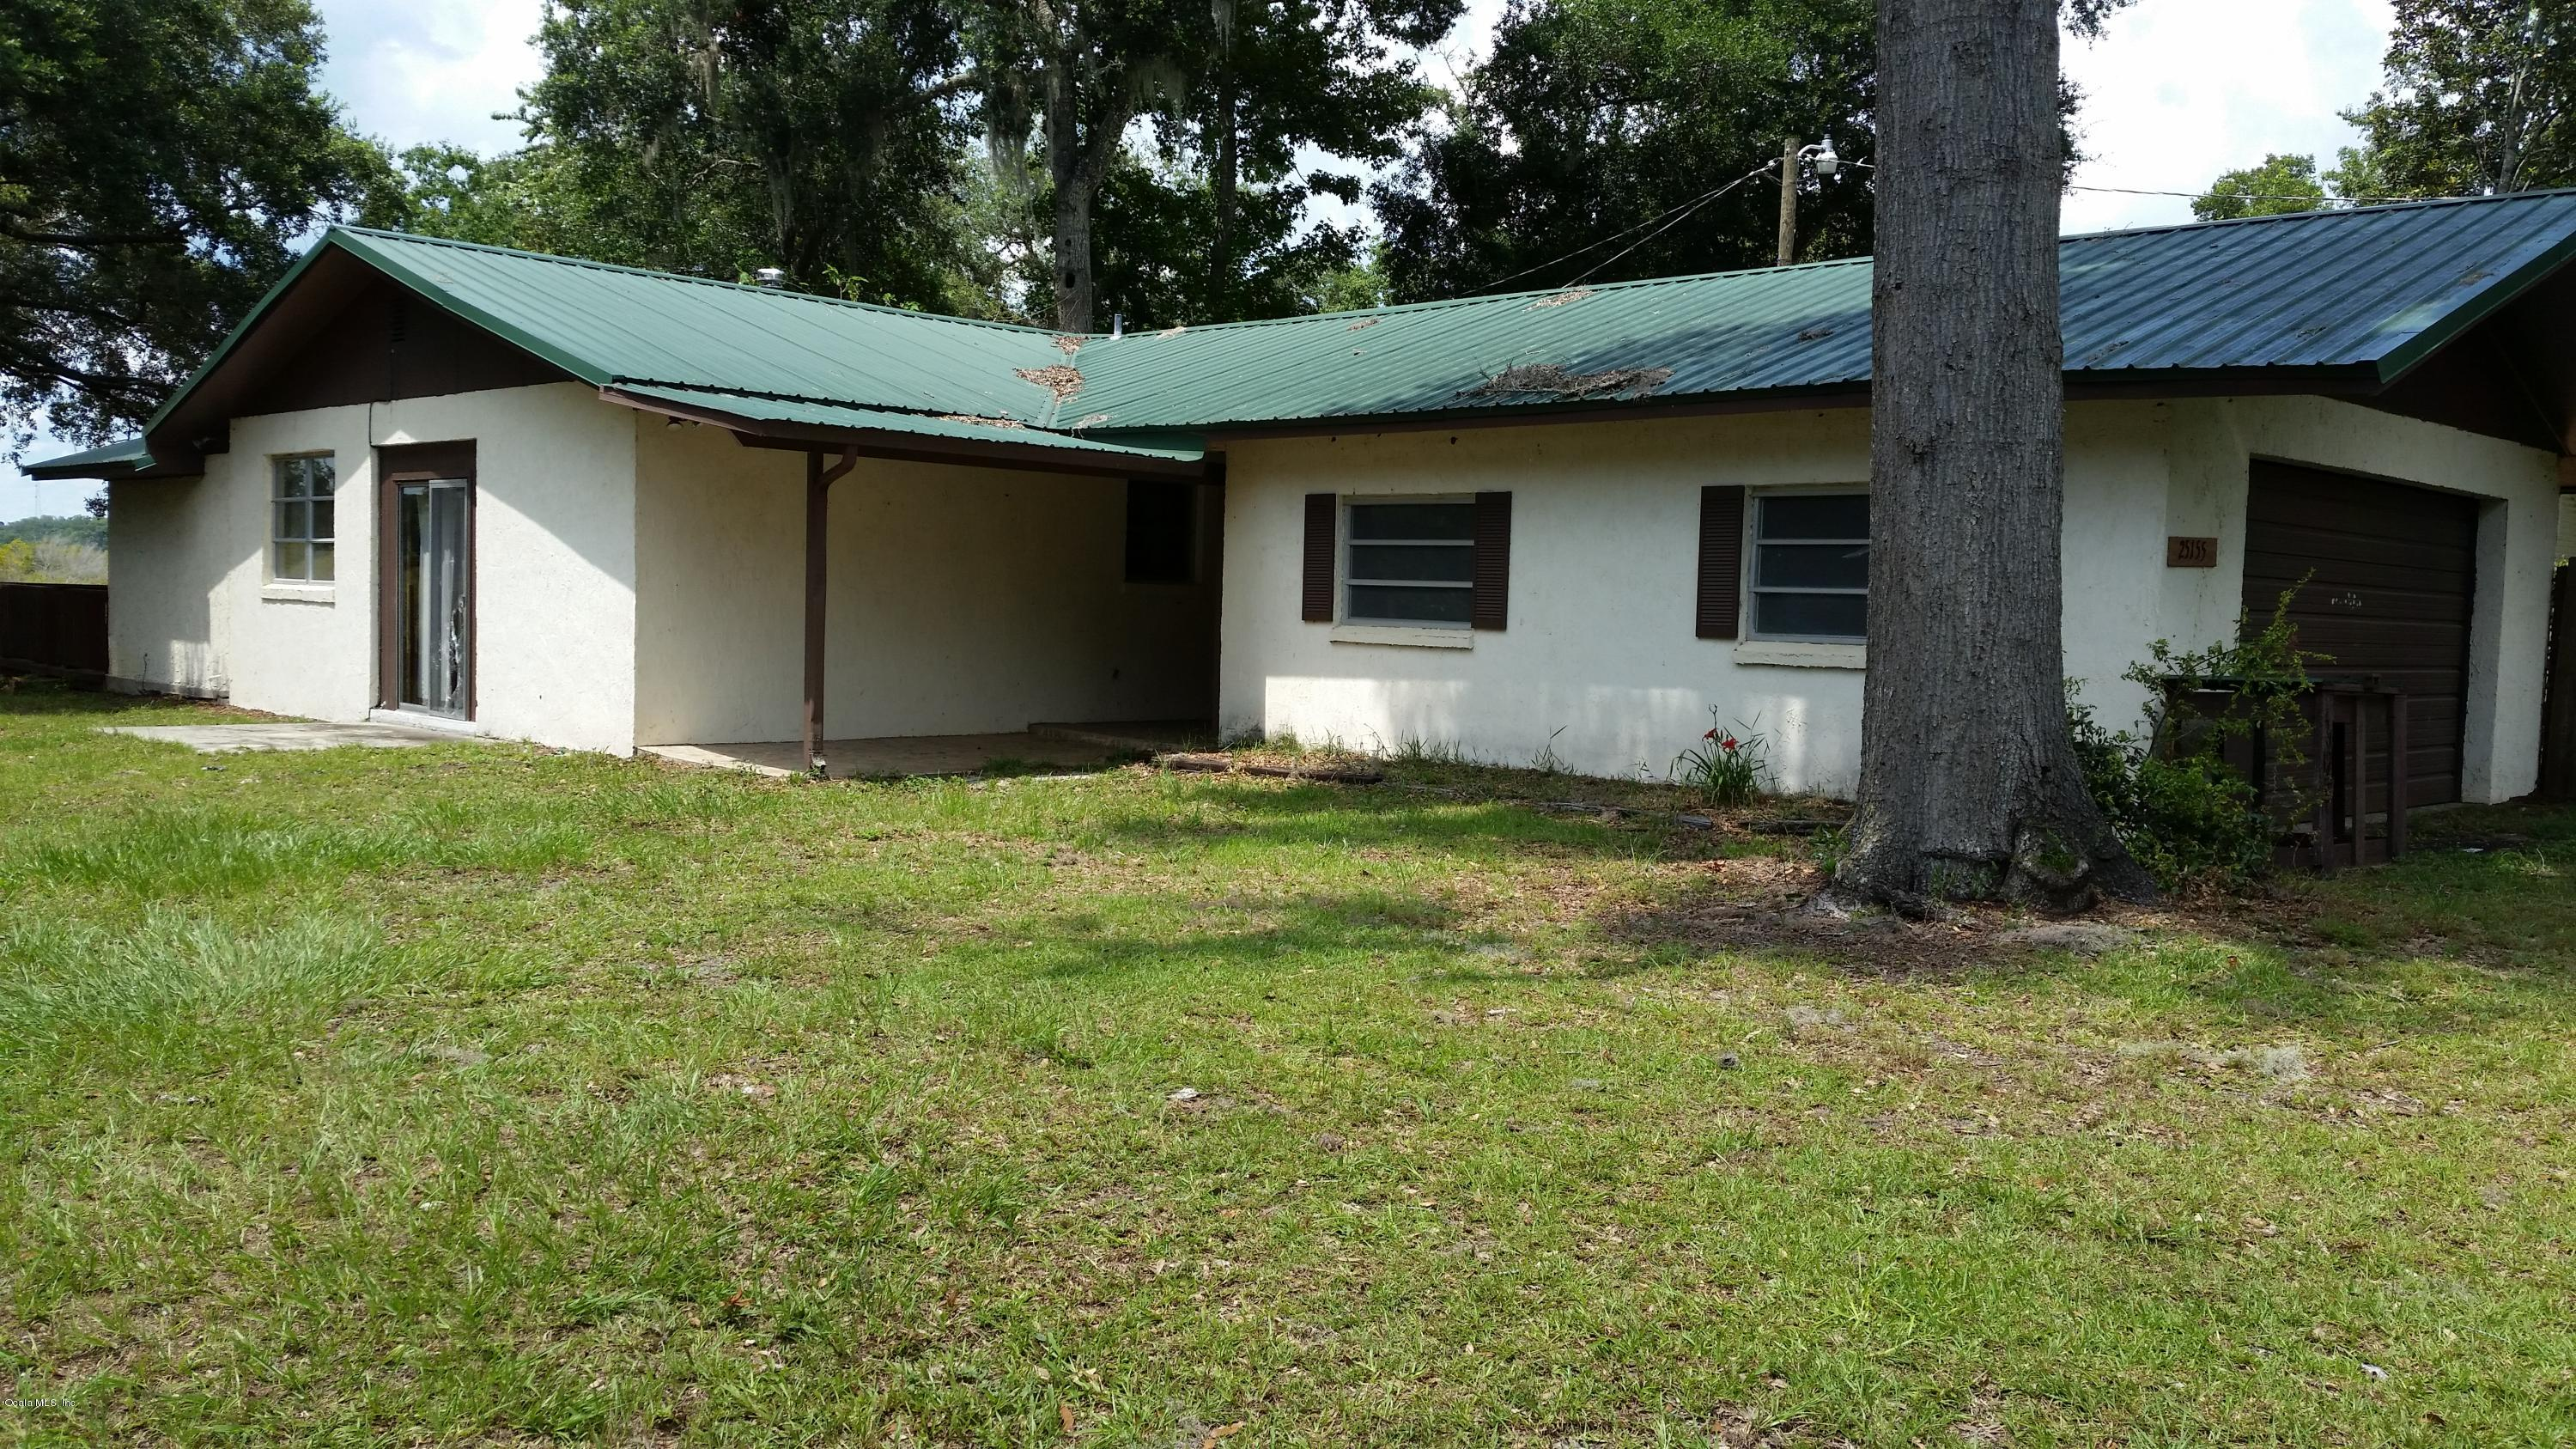 25155 NE 133 LANE, SALT SPRINGS, FL 32134